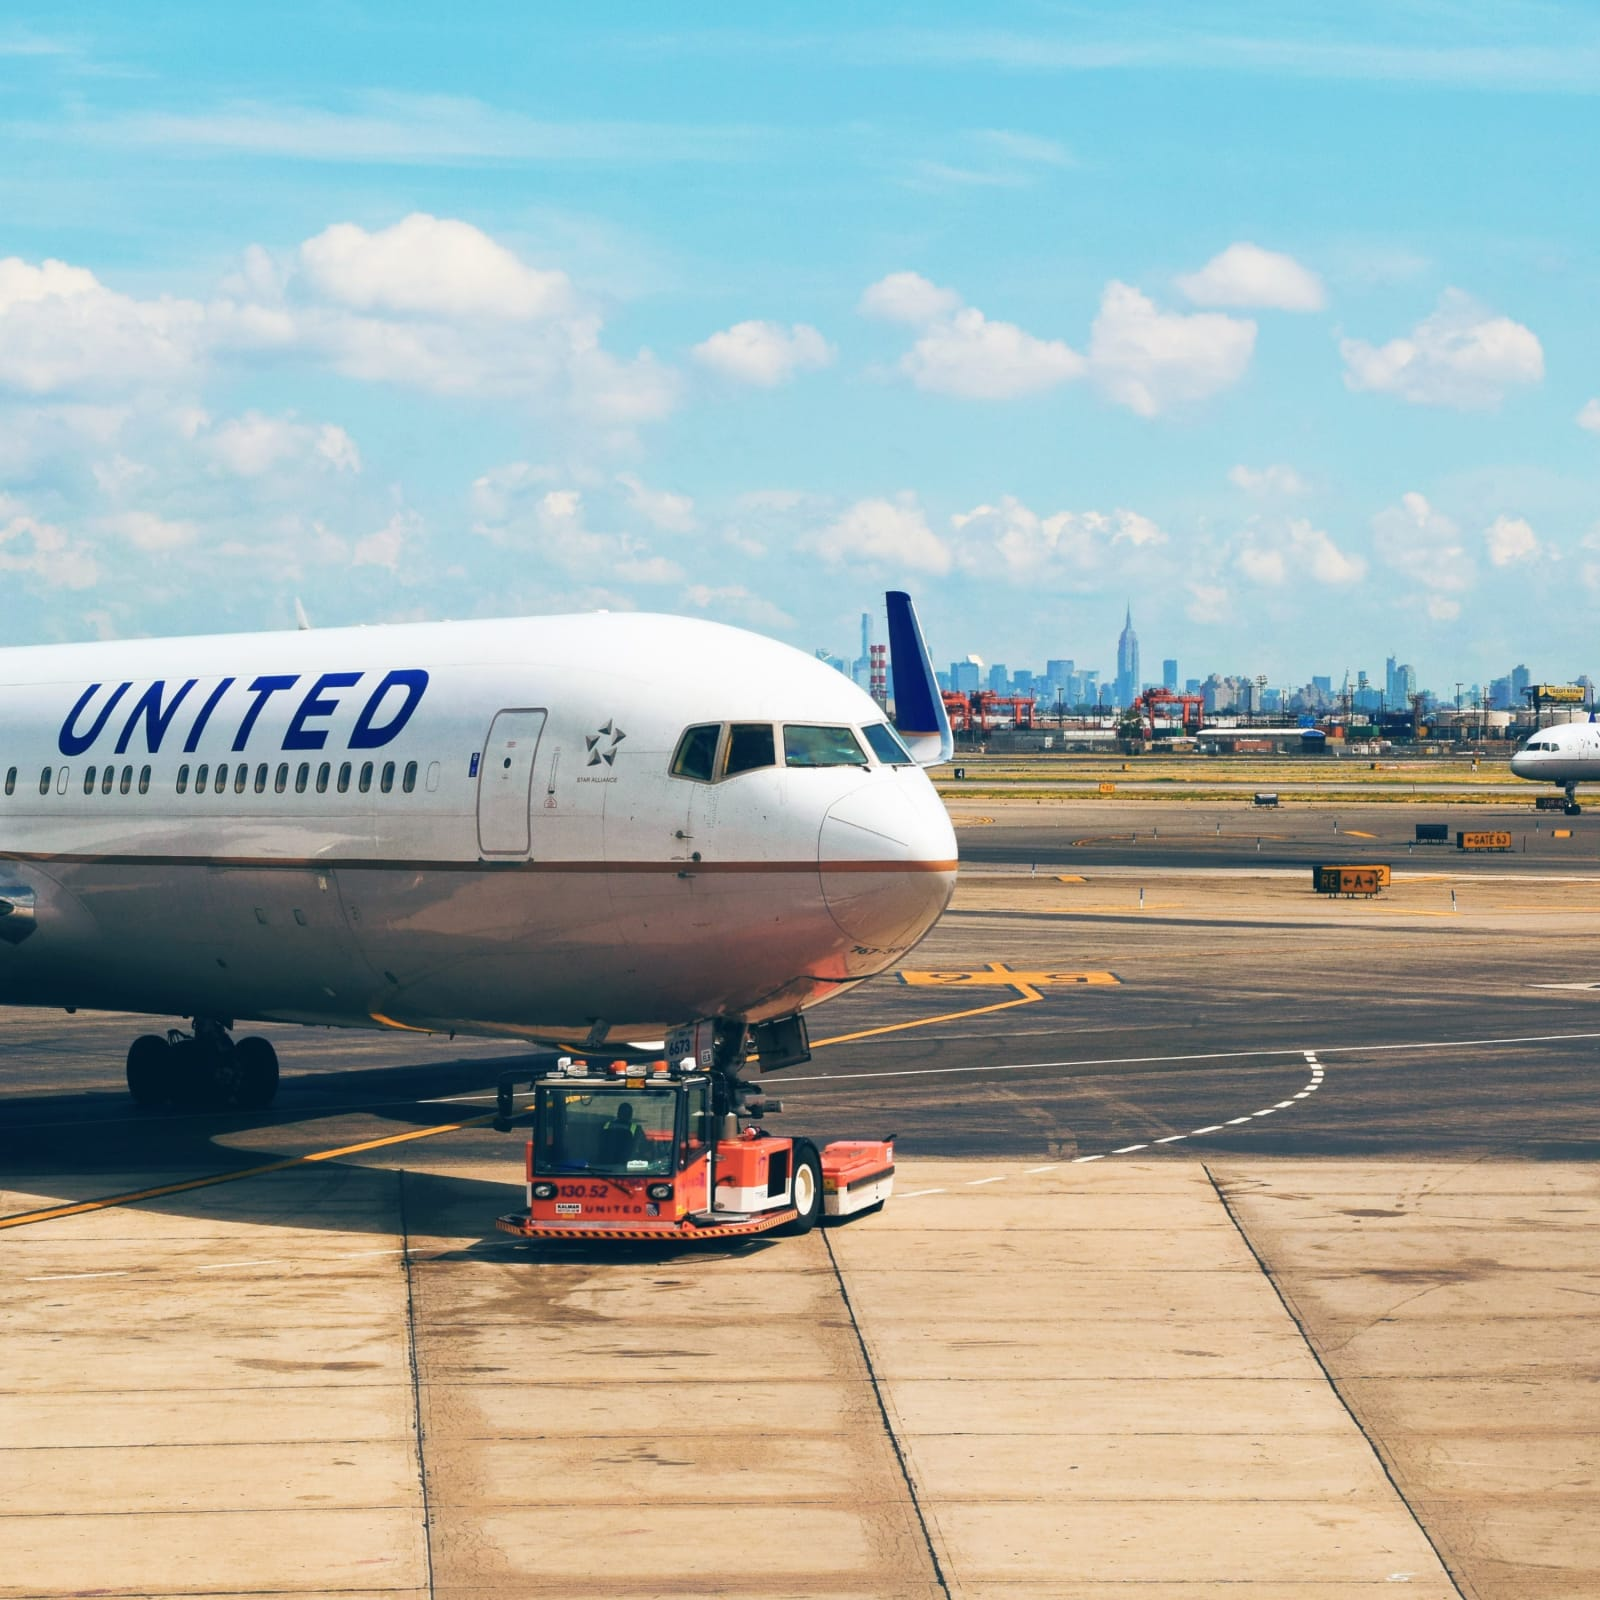 United Airlines Baggage Fees How Much Does United Charge For Bags Valuepenguin,Light Medium Chocolate Brown Hair Color